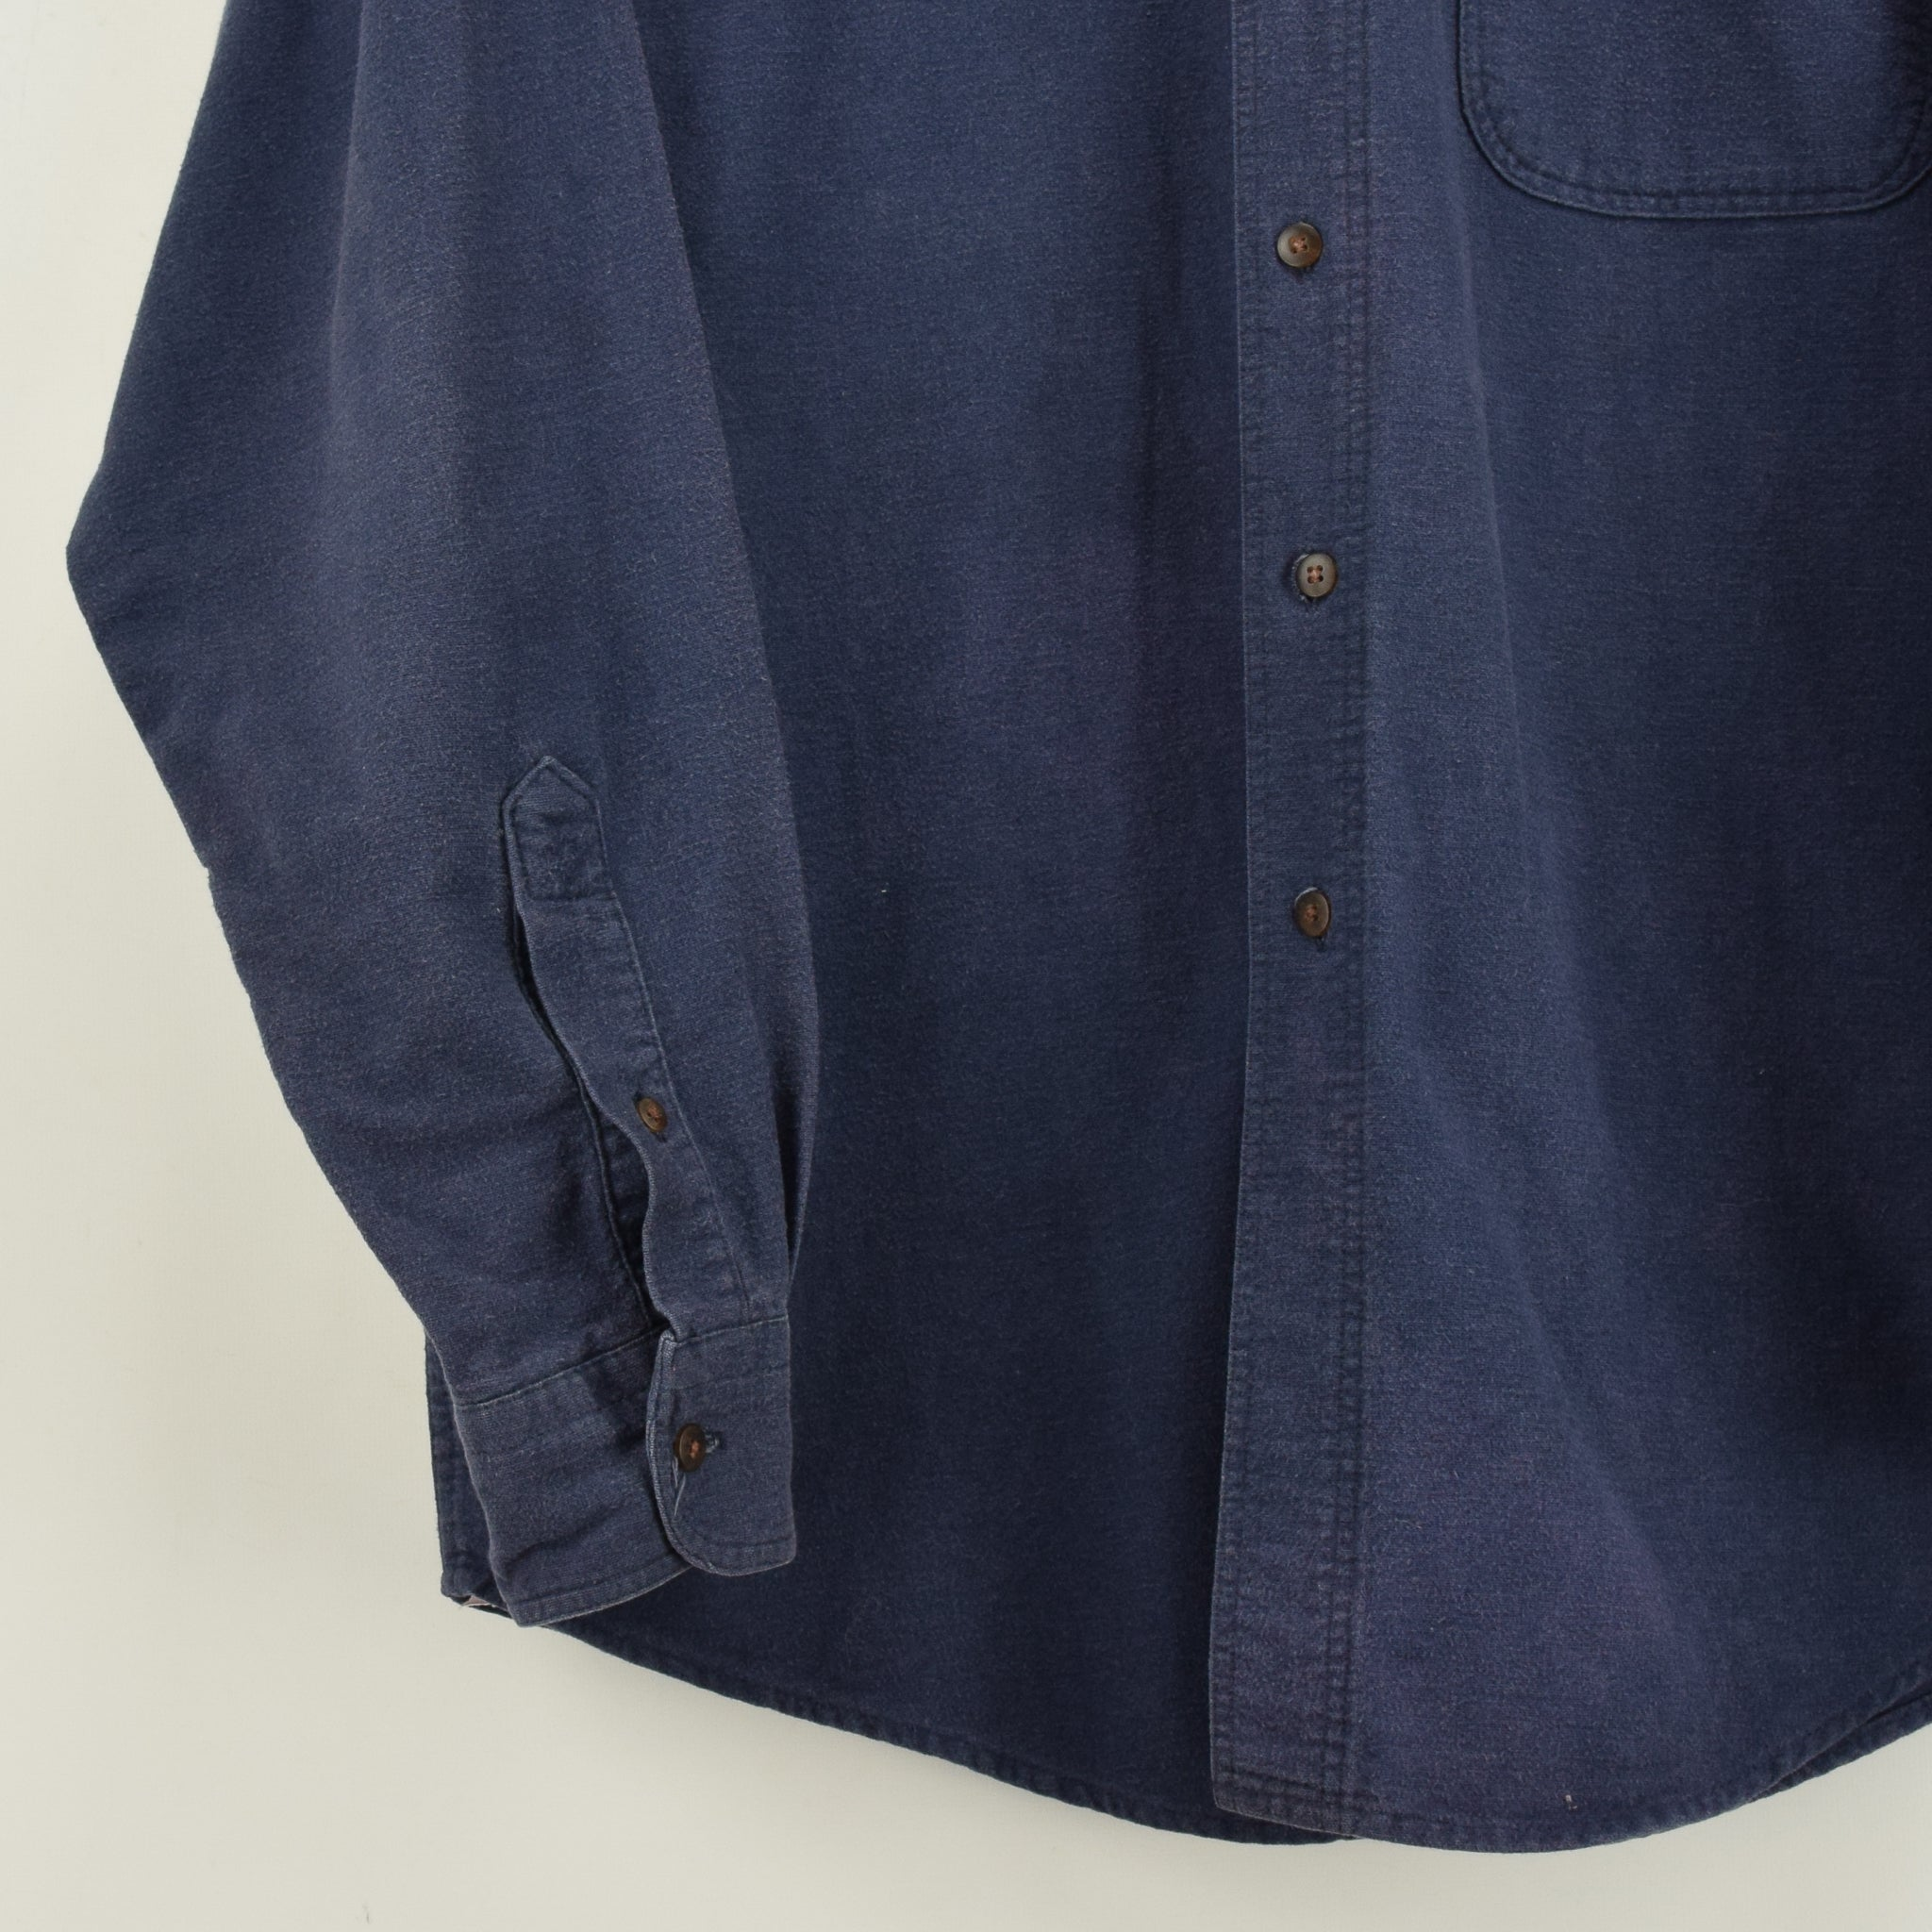 Vintage Woolrich Washed Navy Blue Long Sleeve Cotton Shirt Made in USA L front hem